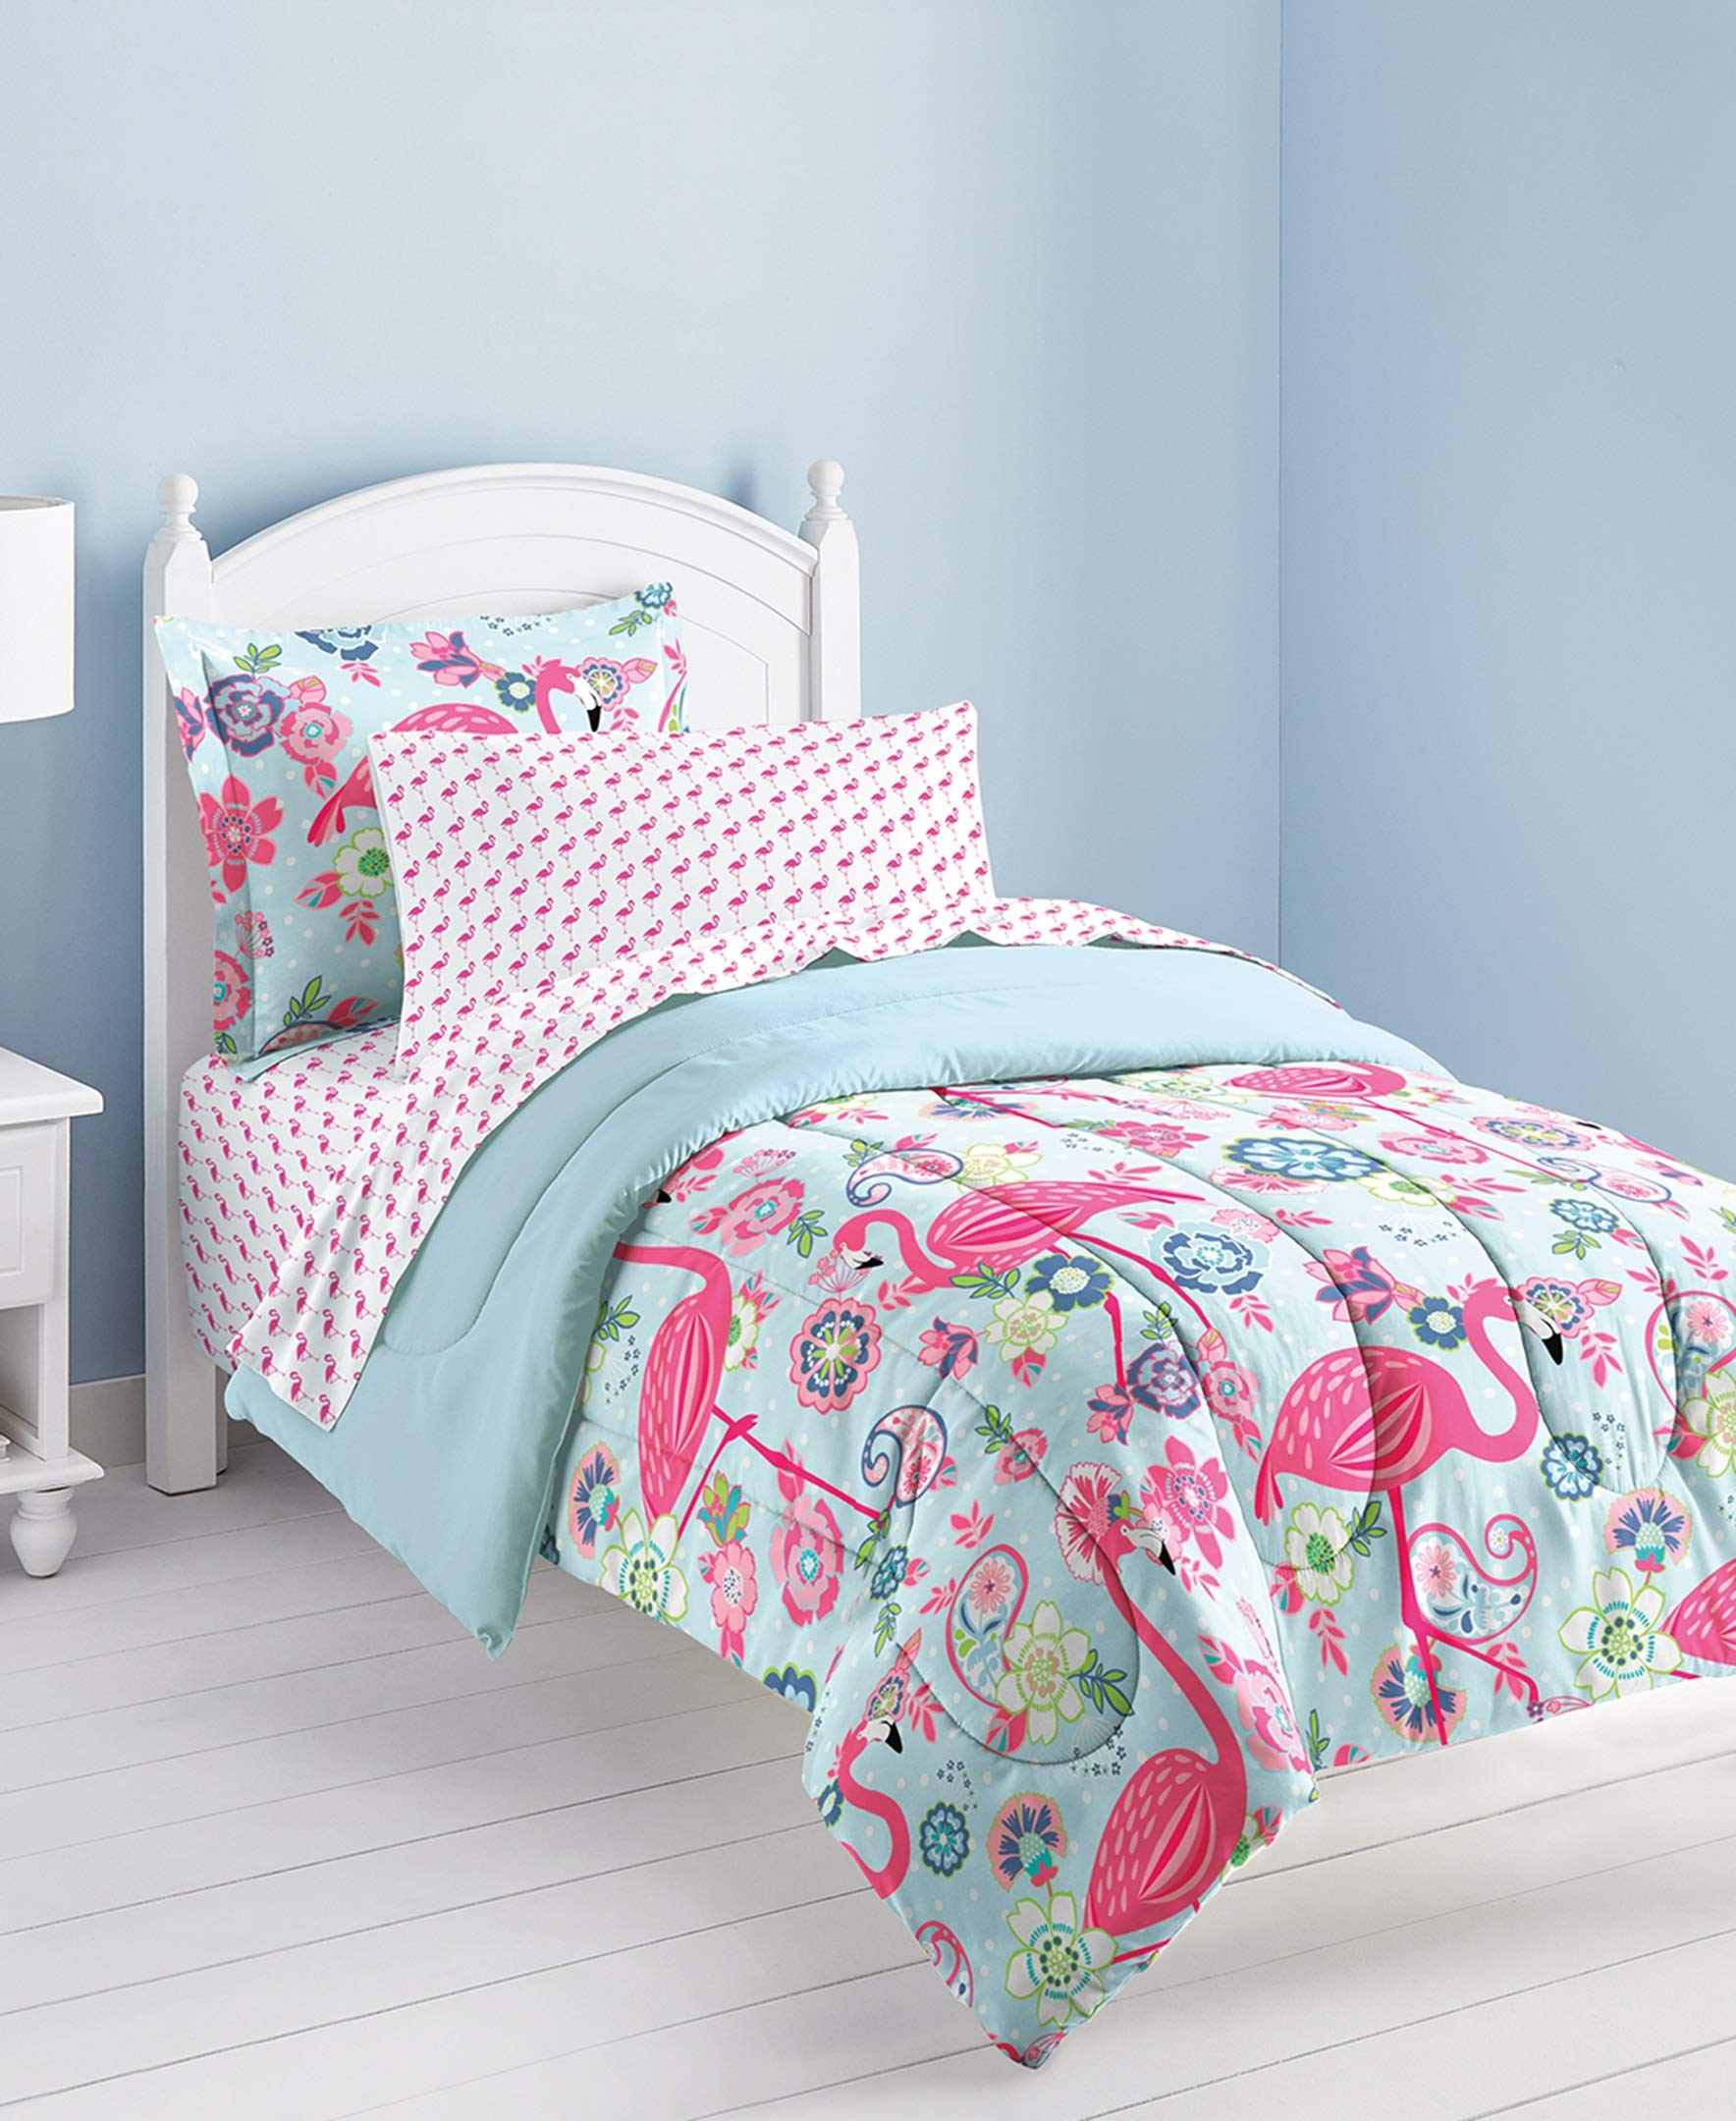 Dream Factory Flamingo Comforter Set, Pink, Twin by Dream Factory (Image #1)